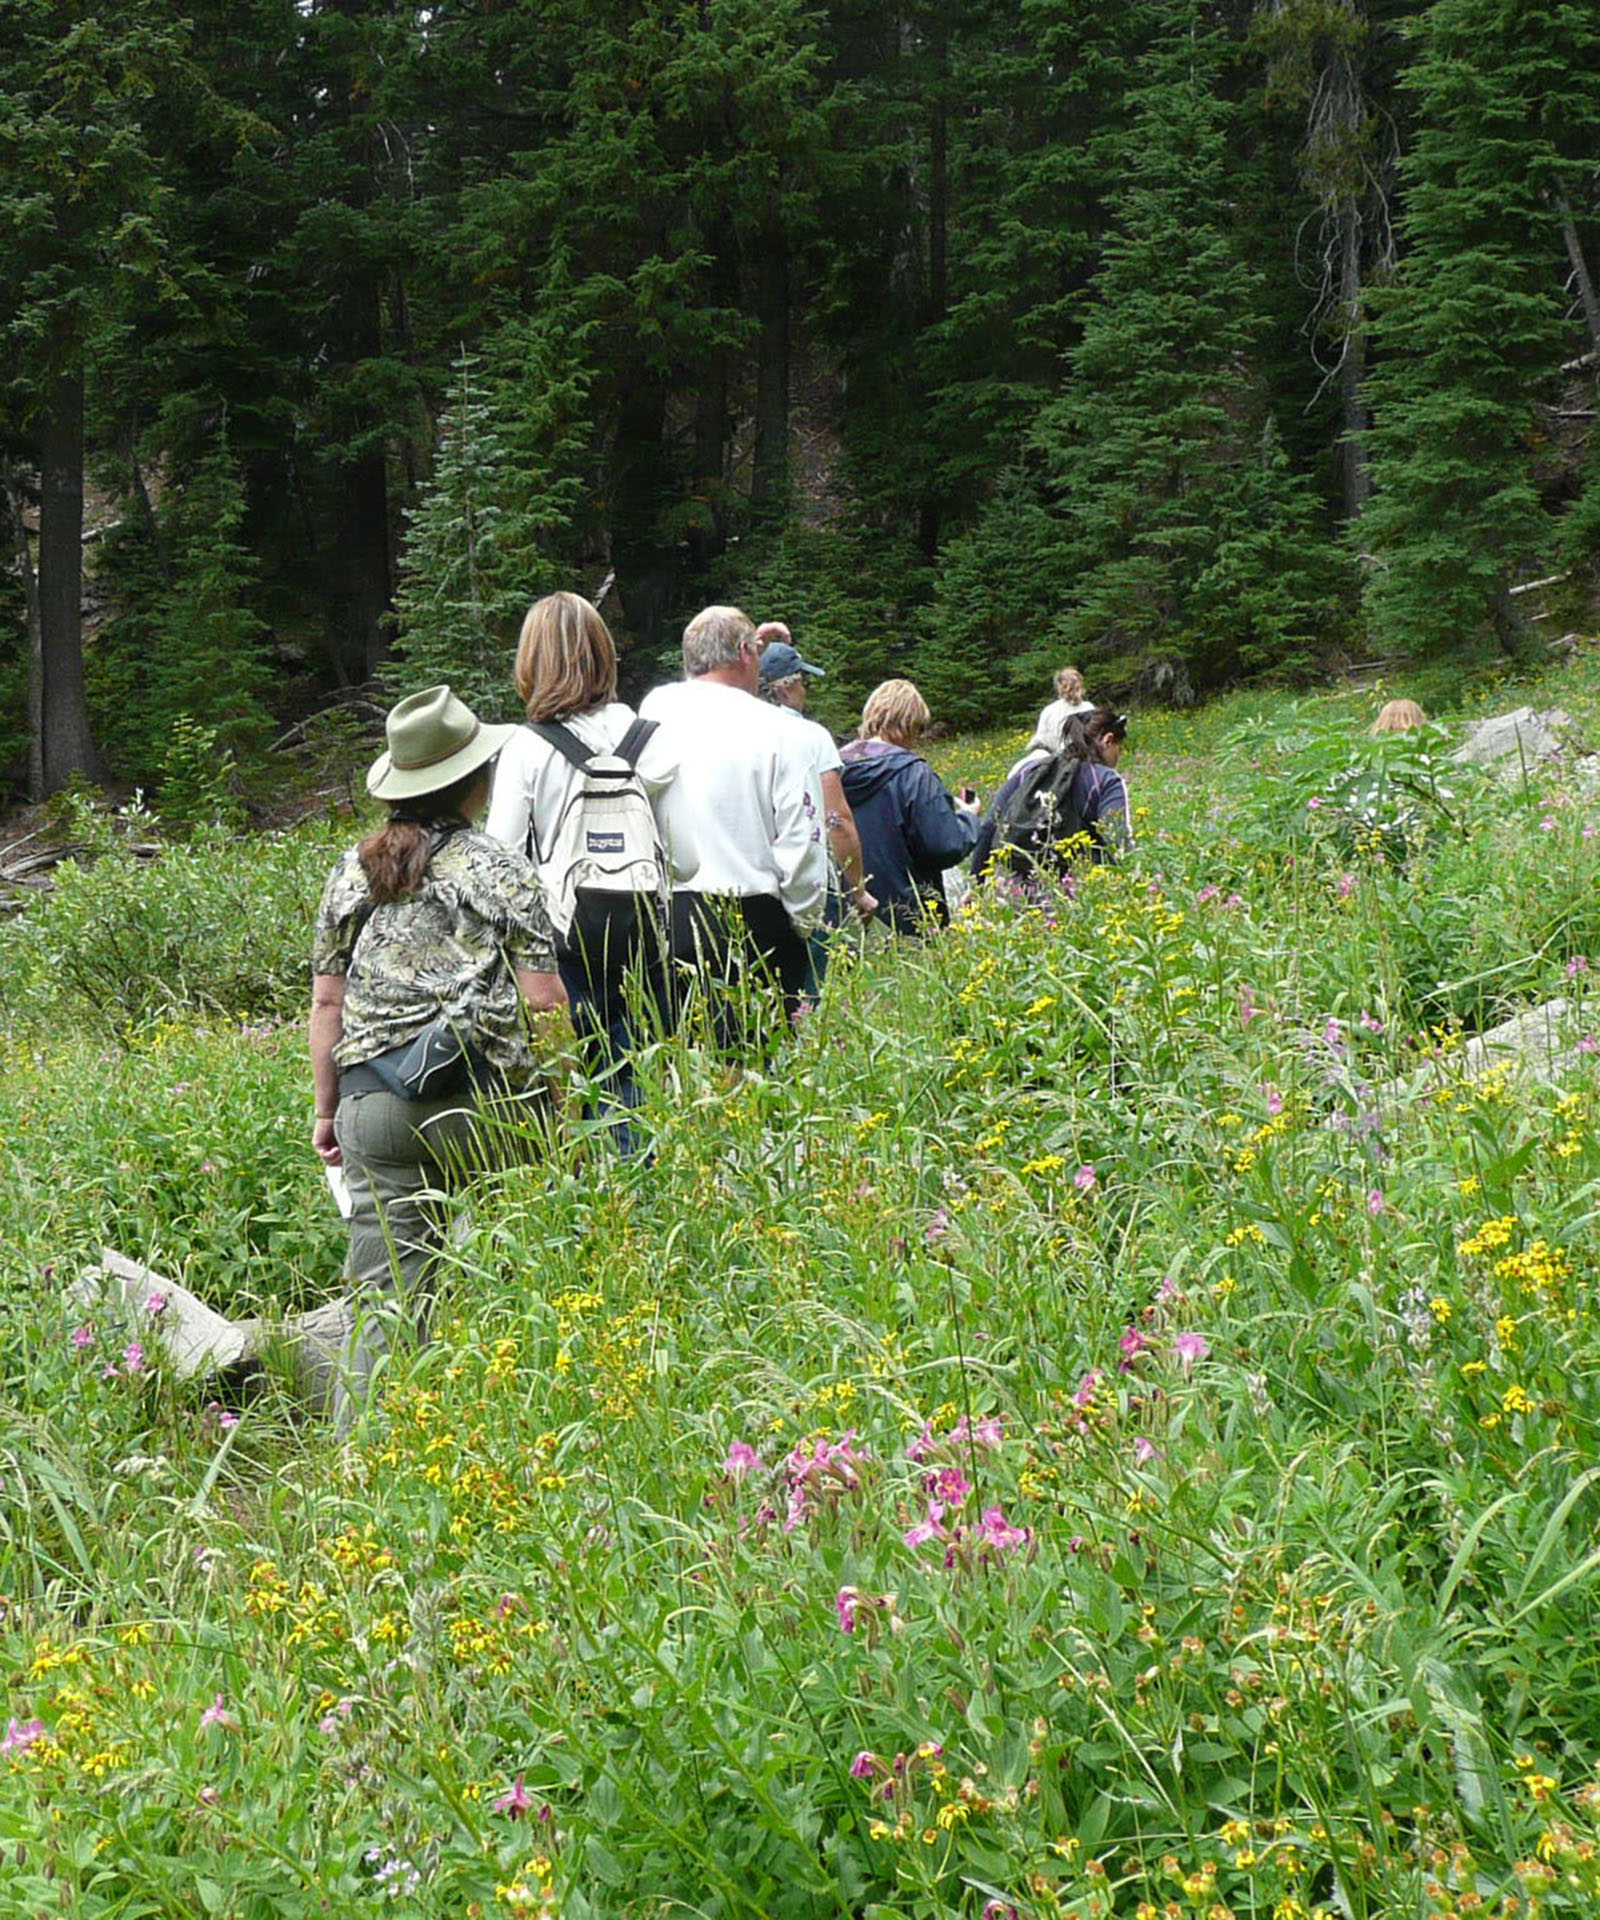 A line of hikers walk along a trail through waist-deep green grasses and yellow and pink flowers.